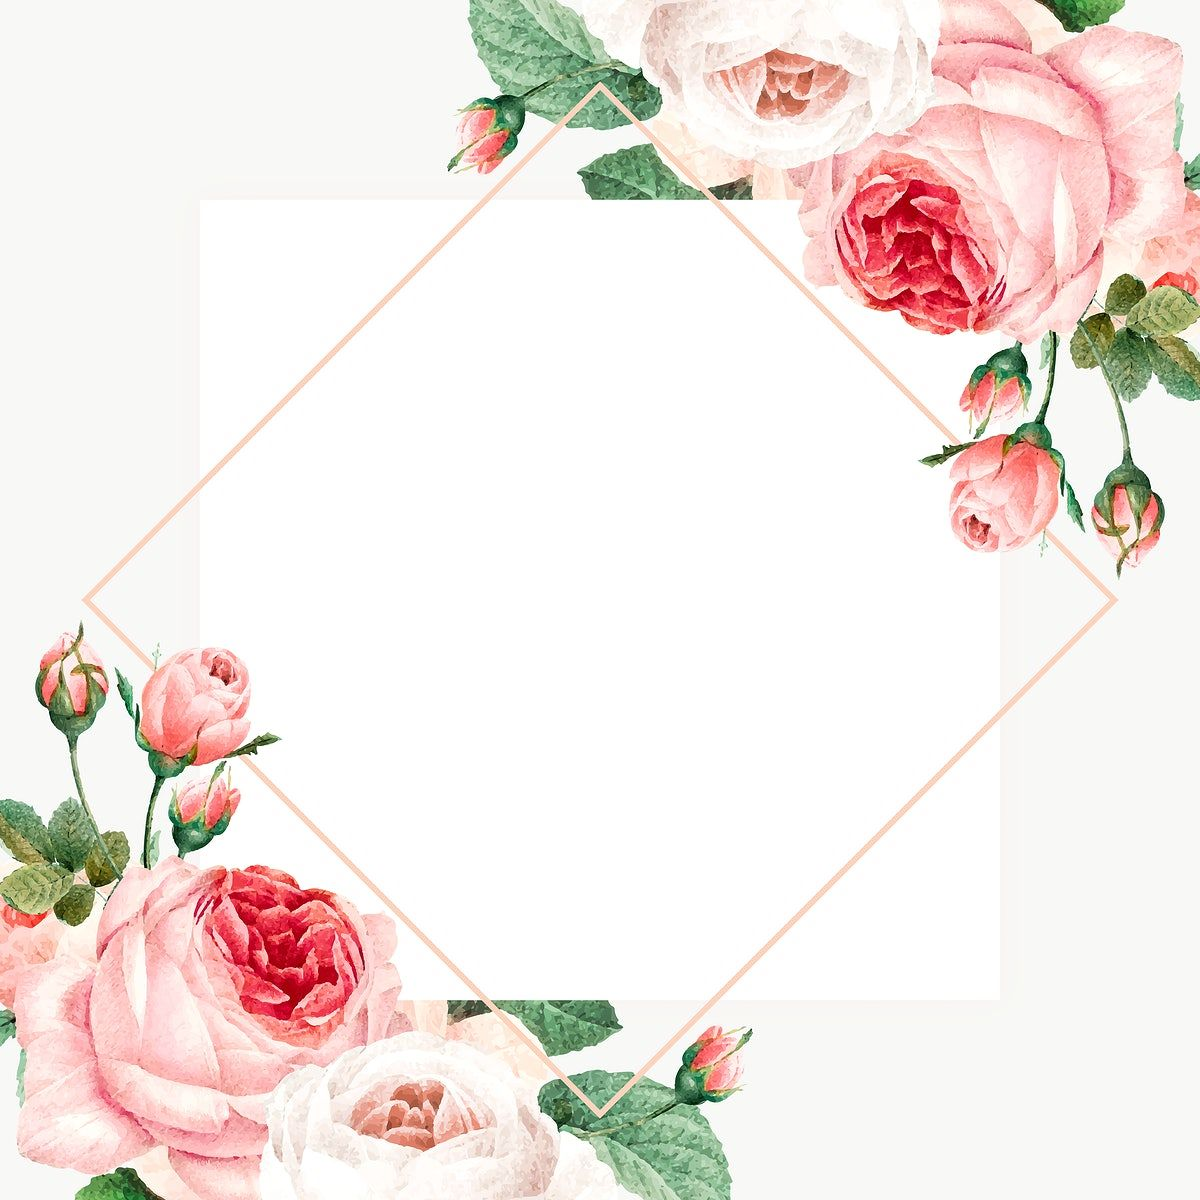 Pin By Rawpixel On Creativity In 2020 Flower Graphic Design Flower Frame Flower Illustration